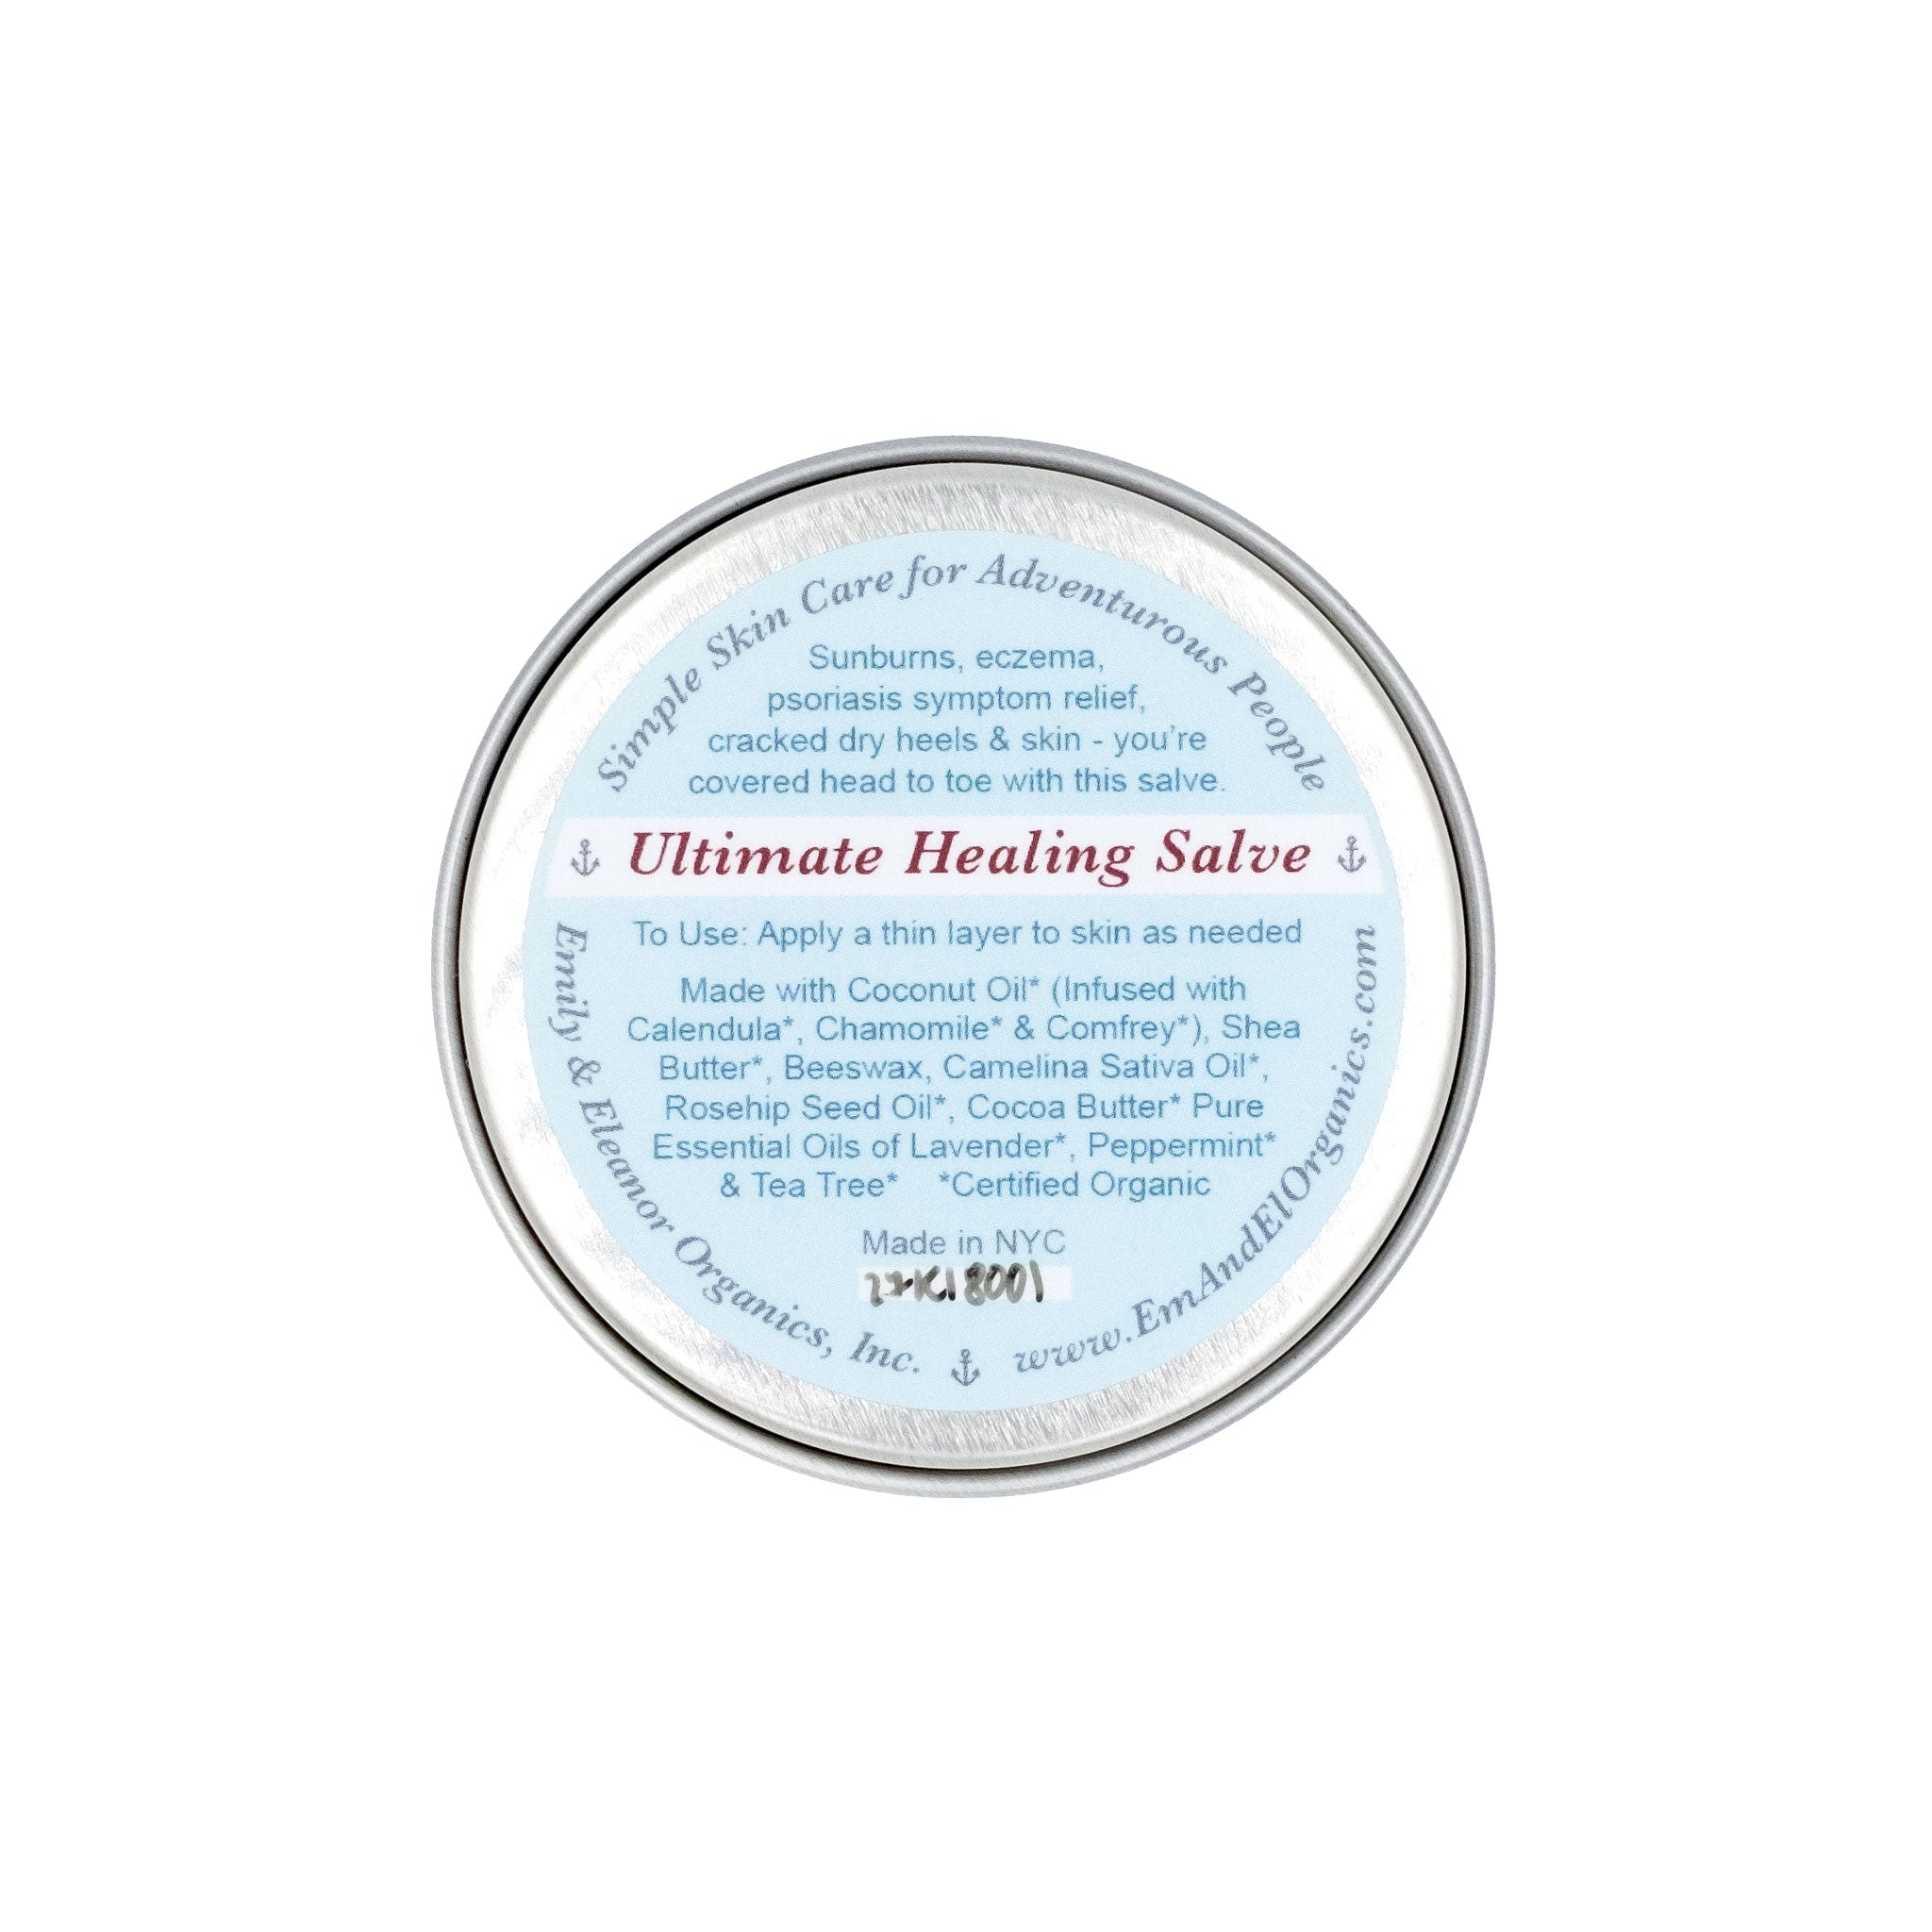 1.5 oz steel tin of organic healing salve for chapped lips, cracked skin and sunburns